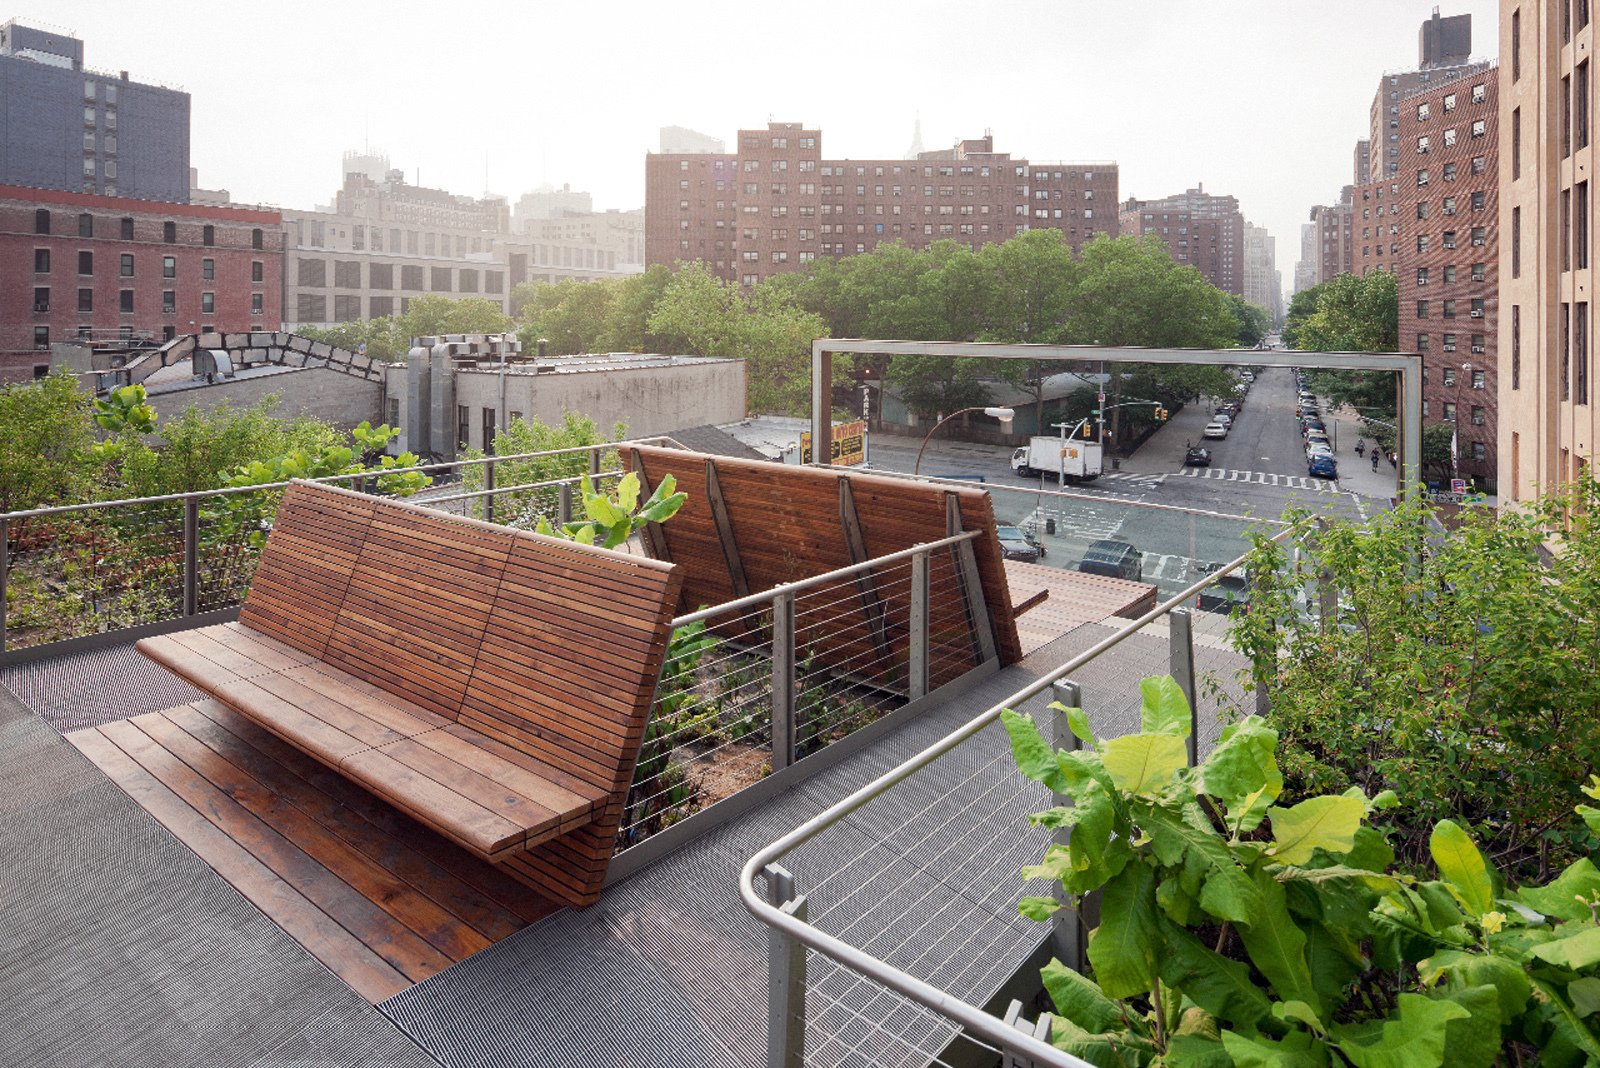 West 26th Street Viewing Spur Bench designed by James Corner Field Operations and Diller Scofidio + Renfro  Your city might not be able to replicate New York's High Line , but what about the wooden benches that accompany the uber trendy spot? Designed in-house by Diller Scofidio + Renfro and James Corner Field Operations specifically for the project, a variety of benches provide context for the elevated park at the West 26th Street viewing space.  Street Furniture Your City Wishes it Had by Tim Newcomb